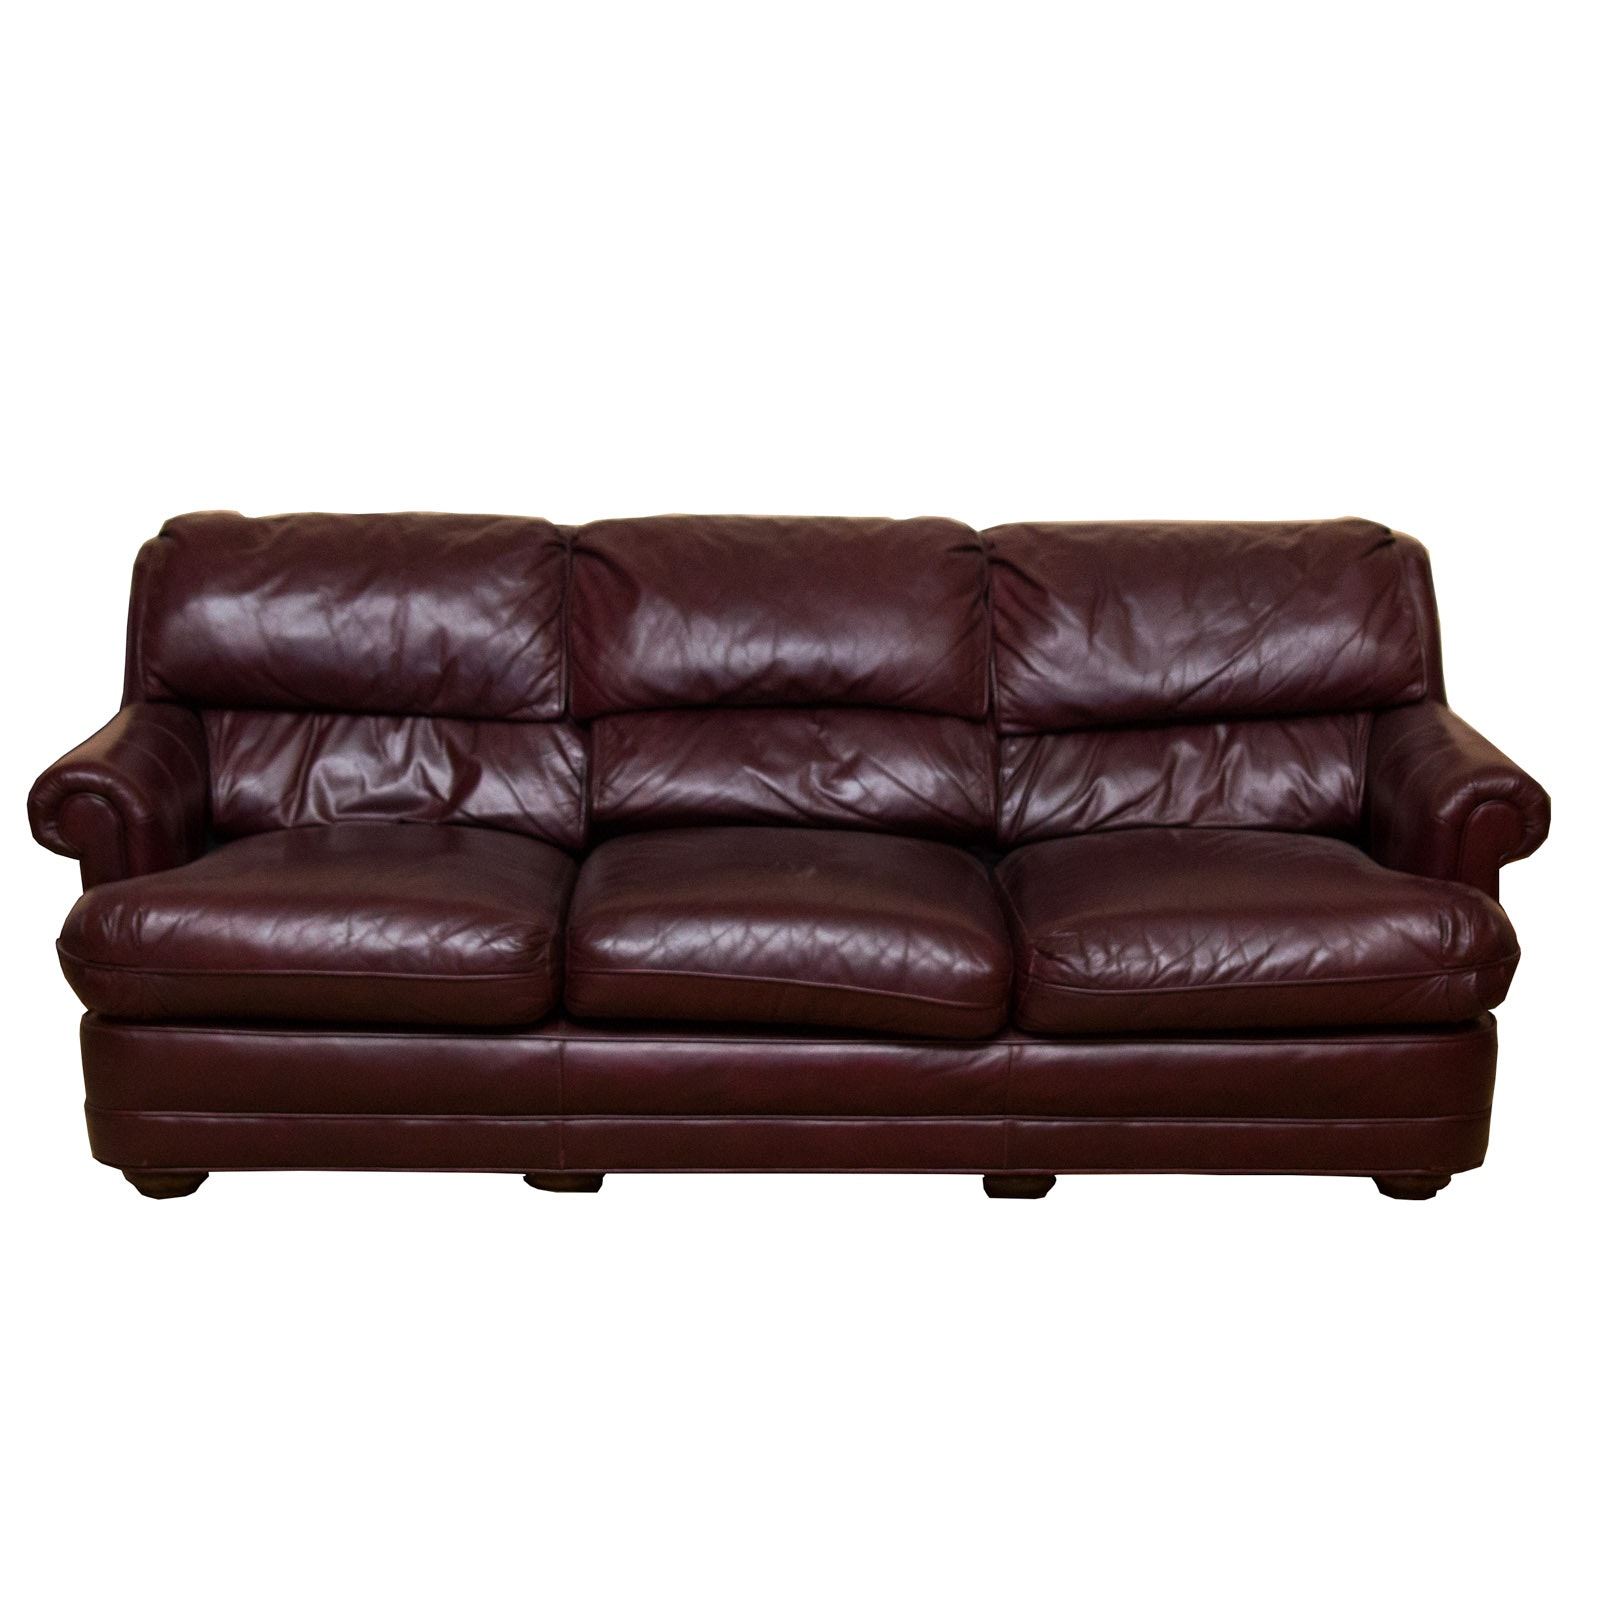 Distinction Furniture Company Leather Sofa ...